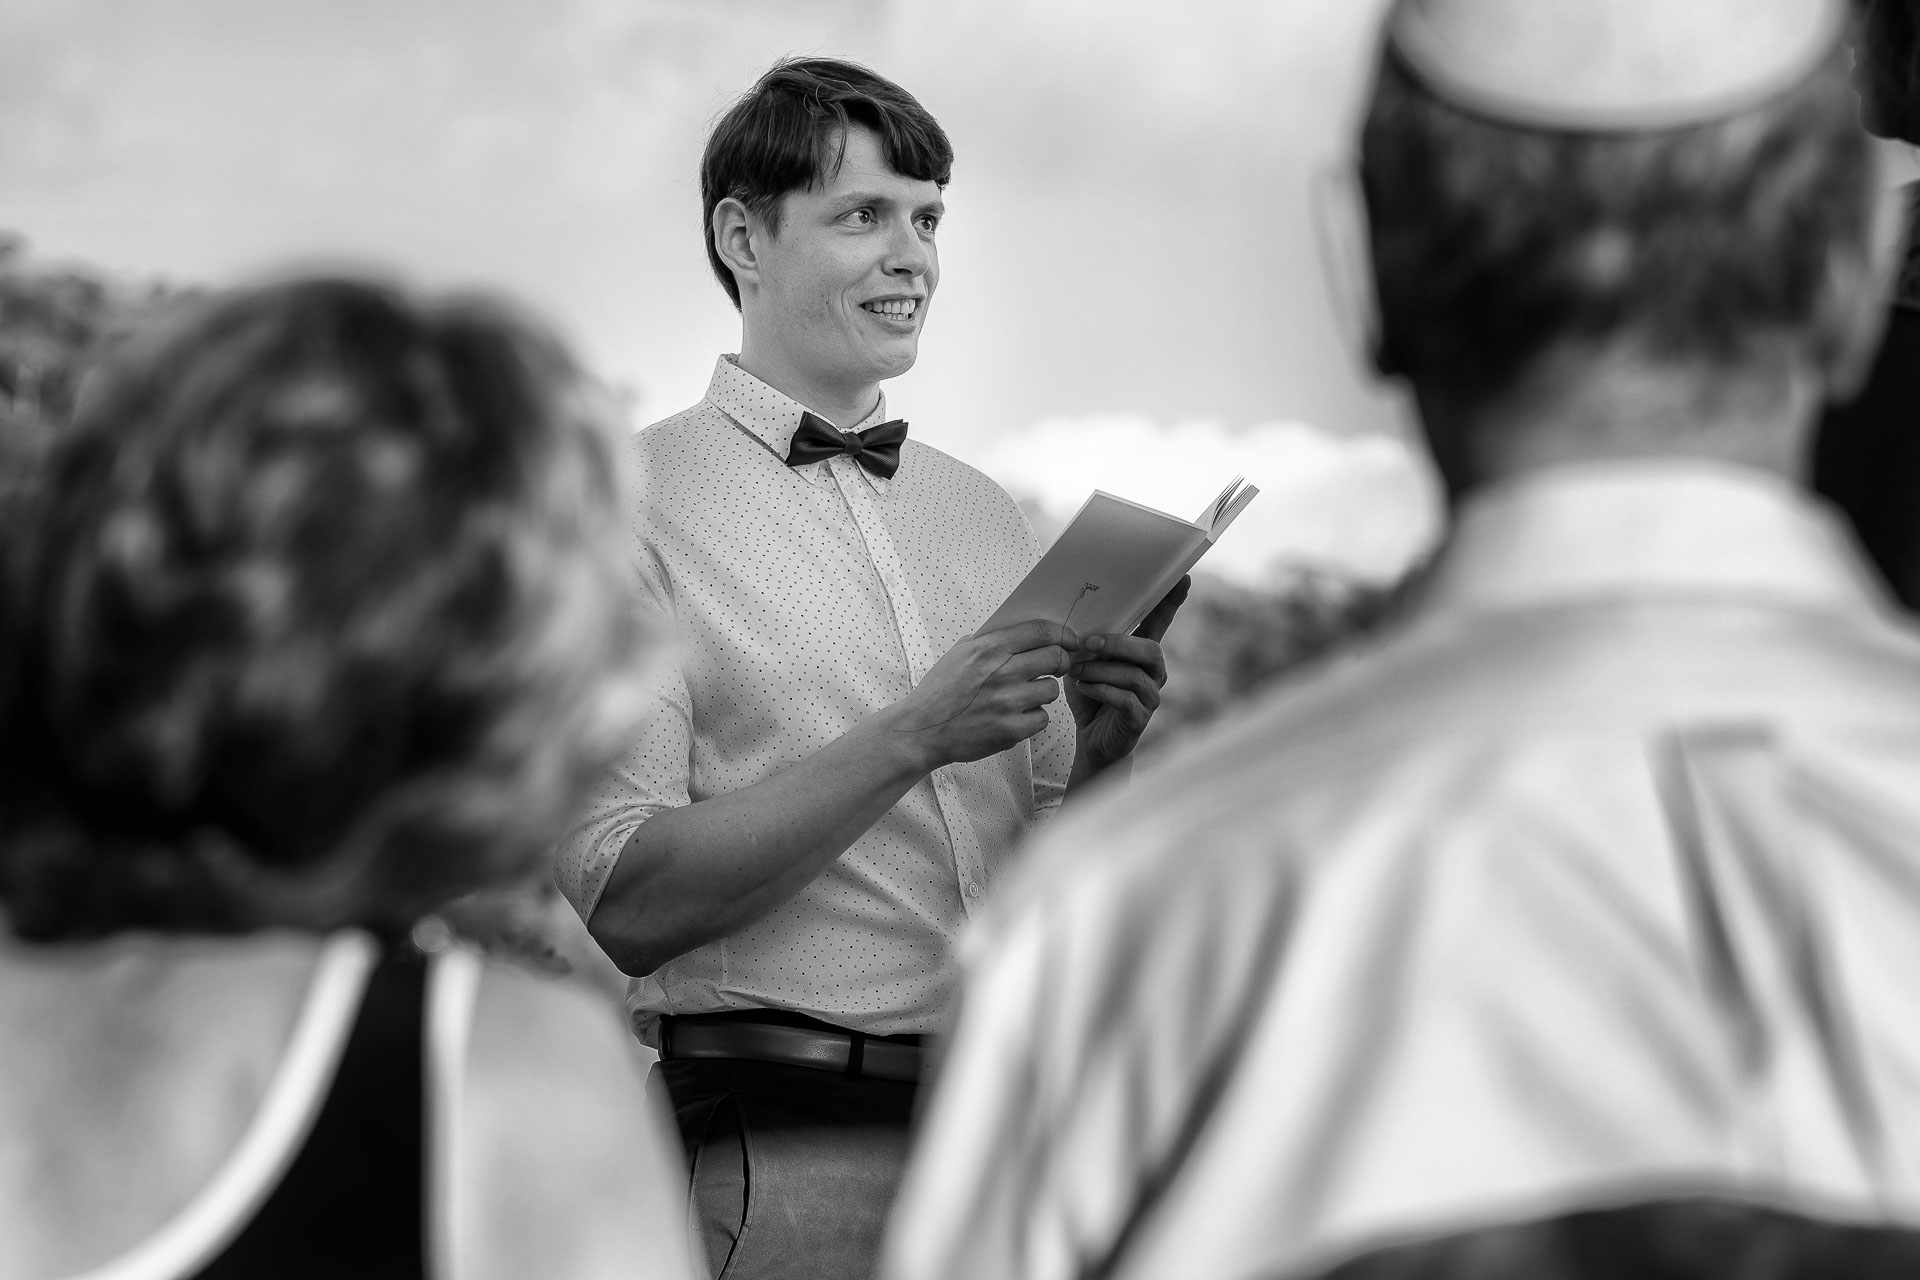 Costa Rica Outdoor Wedding Photography | The groom is using a small book as a reference